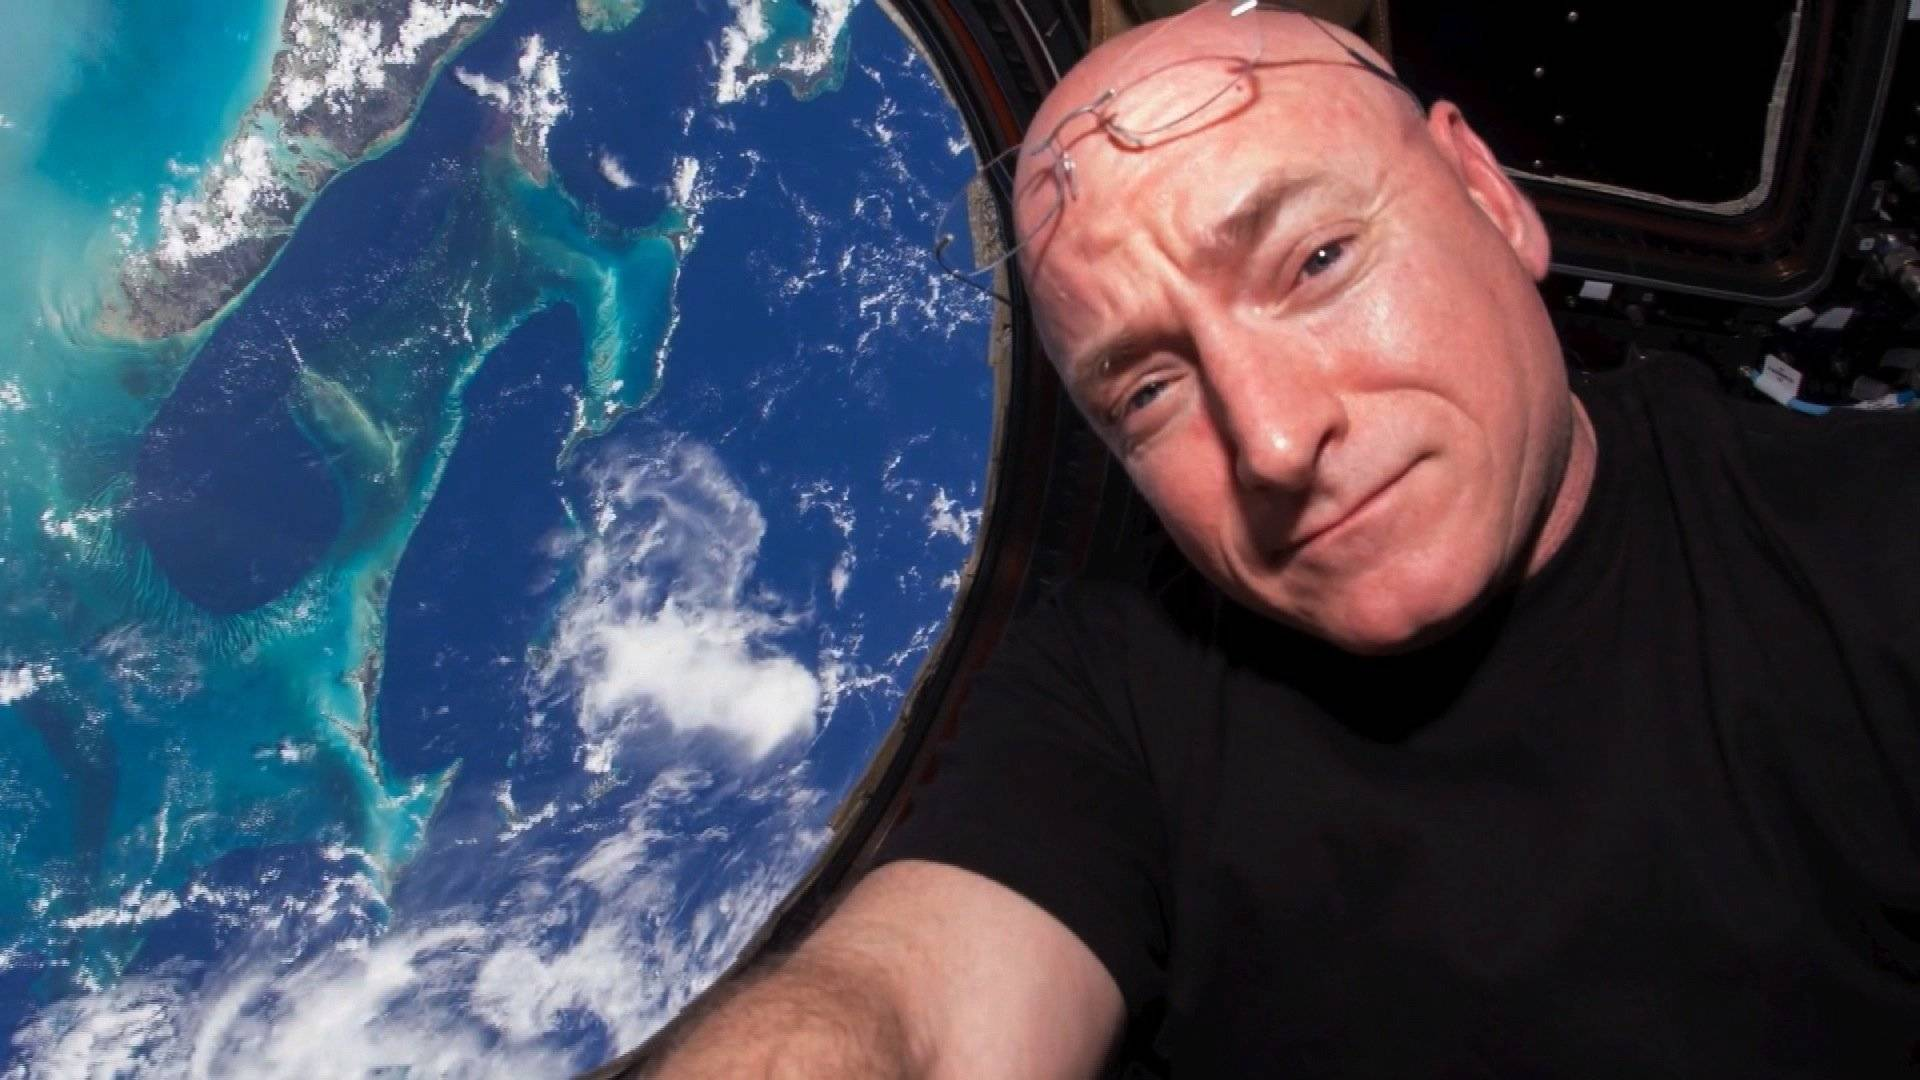 As of Friday, astronaut Scott Kelly has spent more time in outer space than any other American. It was his 383rd day living in space during four missions, according to NASA. Kelly is scheduled to come down to Earth on March 3, according to NASA, after having totaled 522 days in space. He launched on March 27 from Kazakhstan aboard a Russian Soyuz rocket along with two cosmonauts